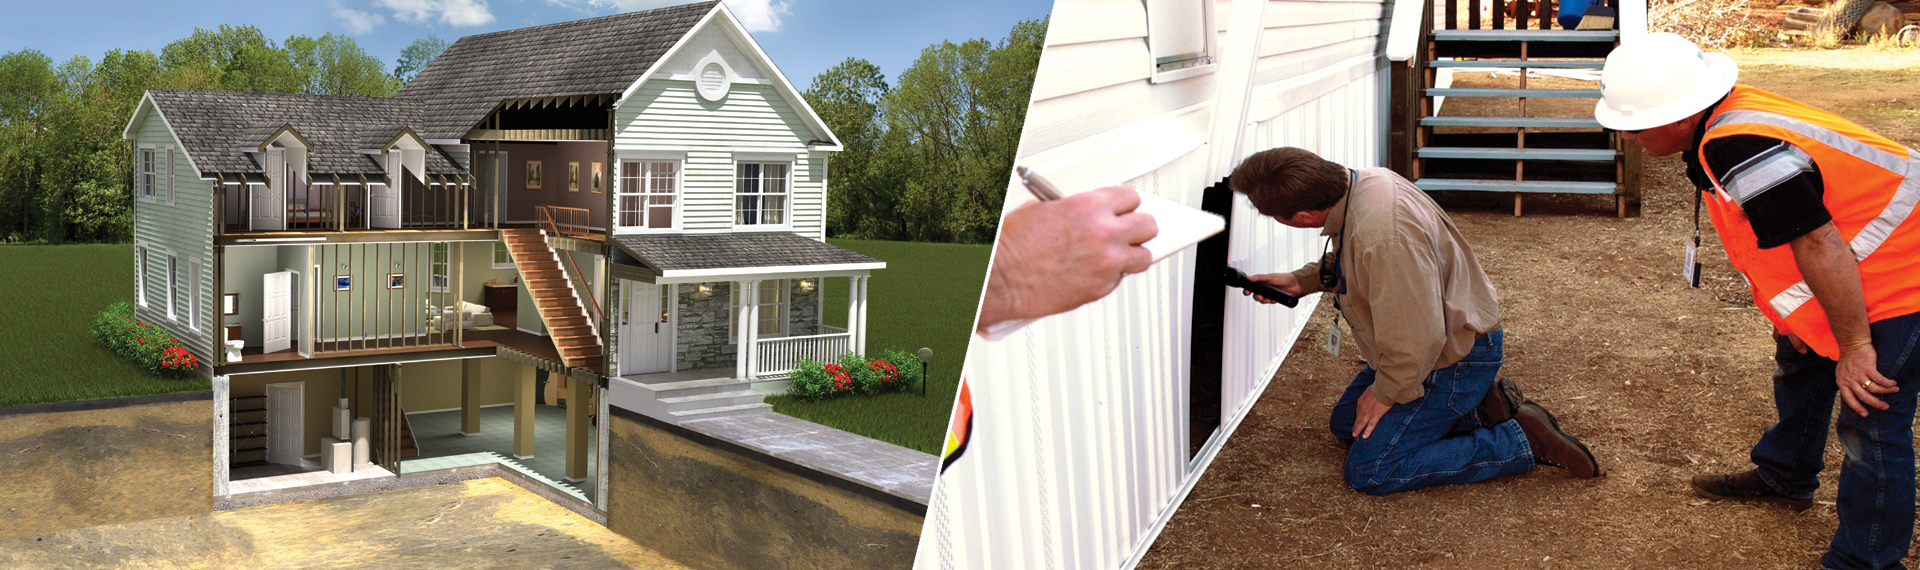 Pillar To Post Home Inspections Naperville IL